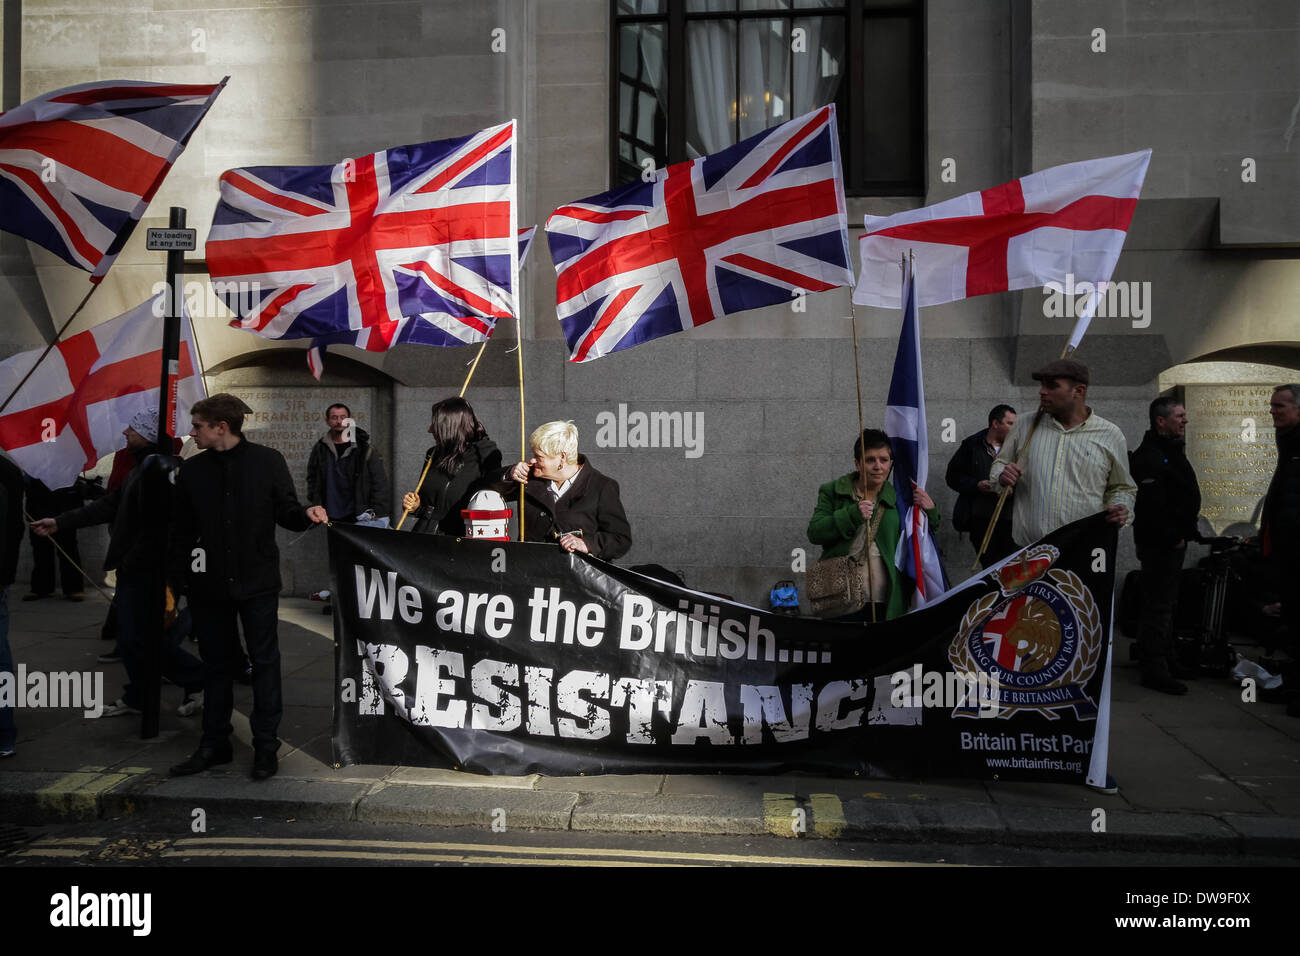 Members of Britain First right-wing patriot group demonstrate outside Old Bailey court in London. - Stock Image